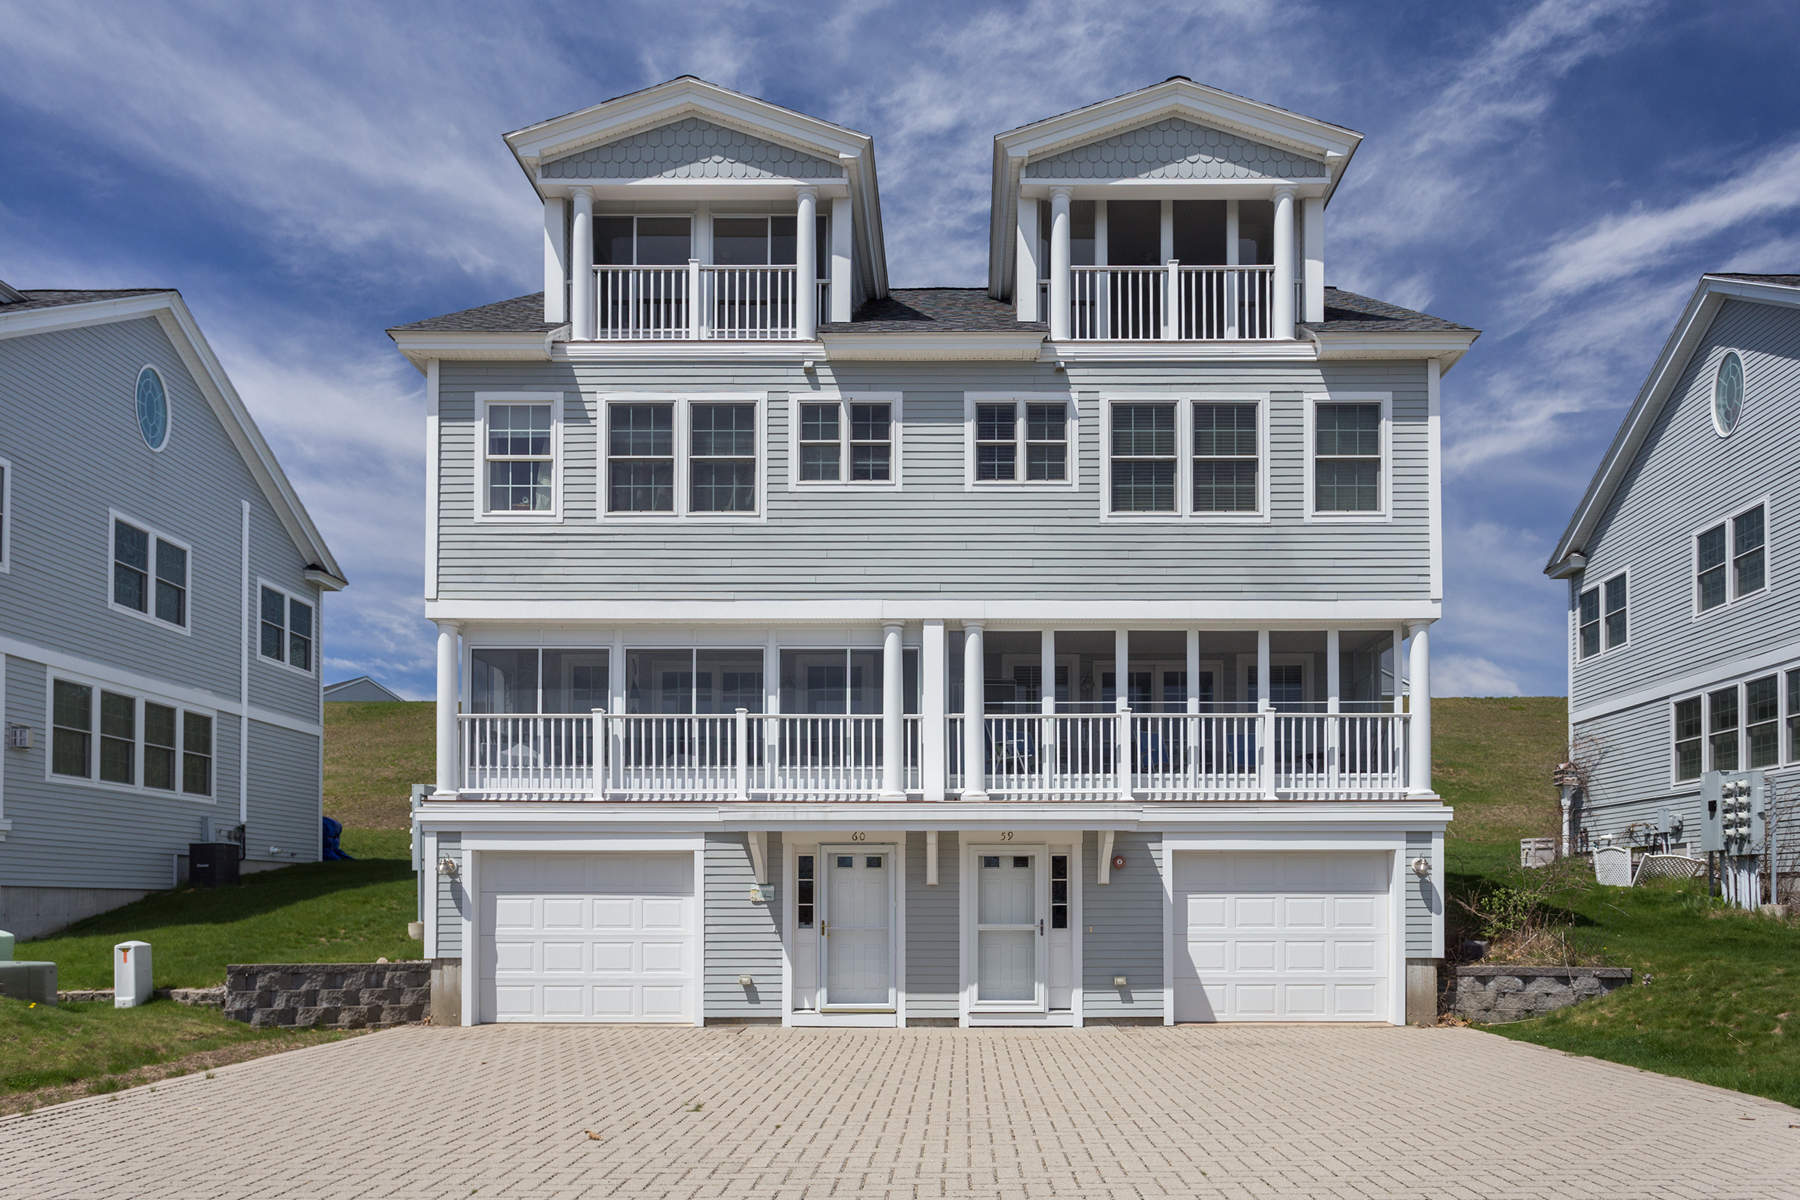 Condominium for Sale at Luxury Amenities & Panoramic Views 1413 Post Road #59, Wells, Maine, 04090 United States